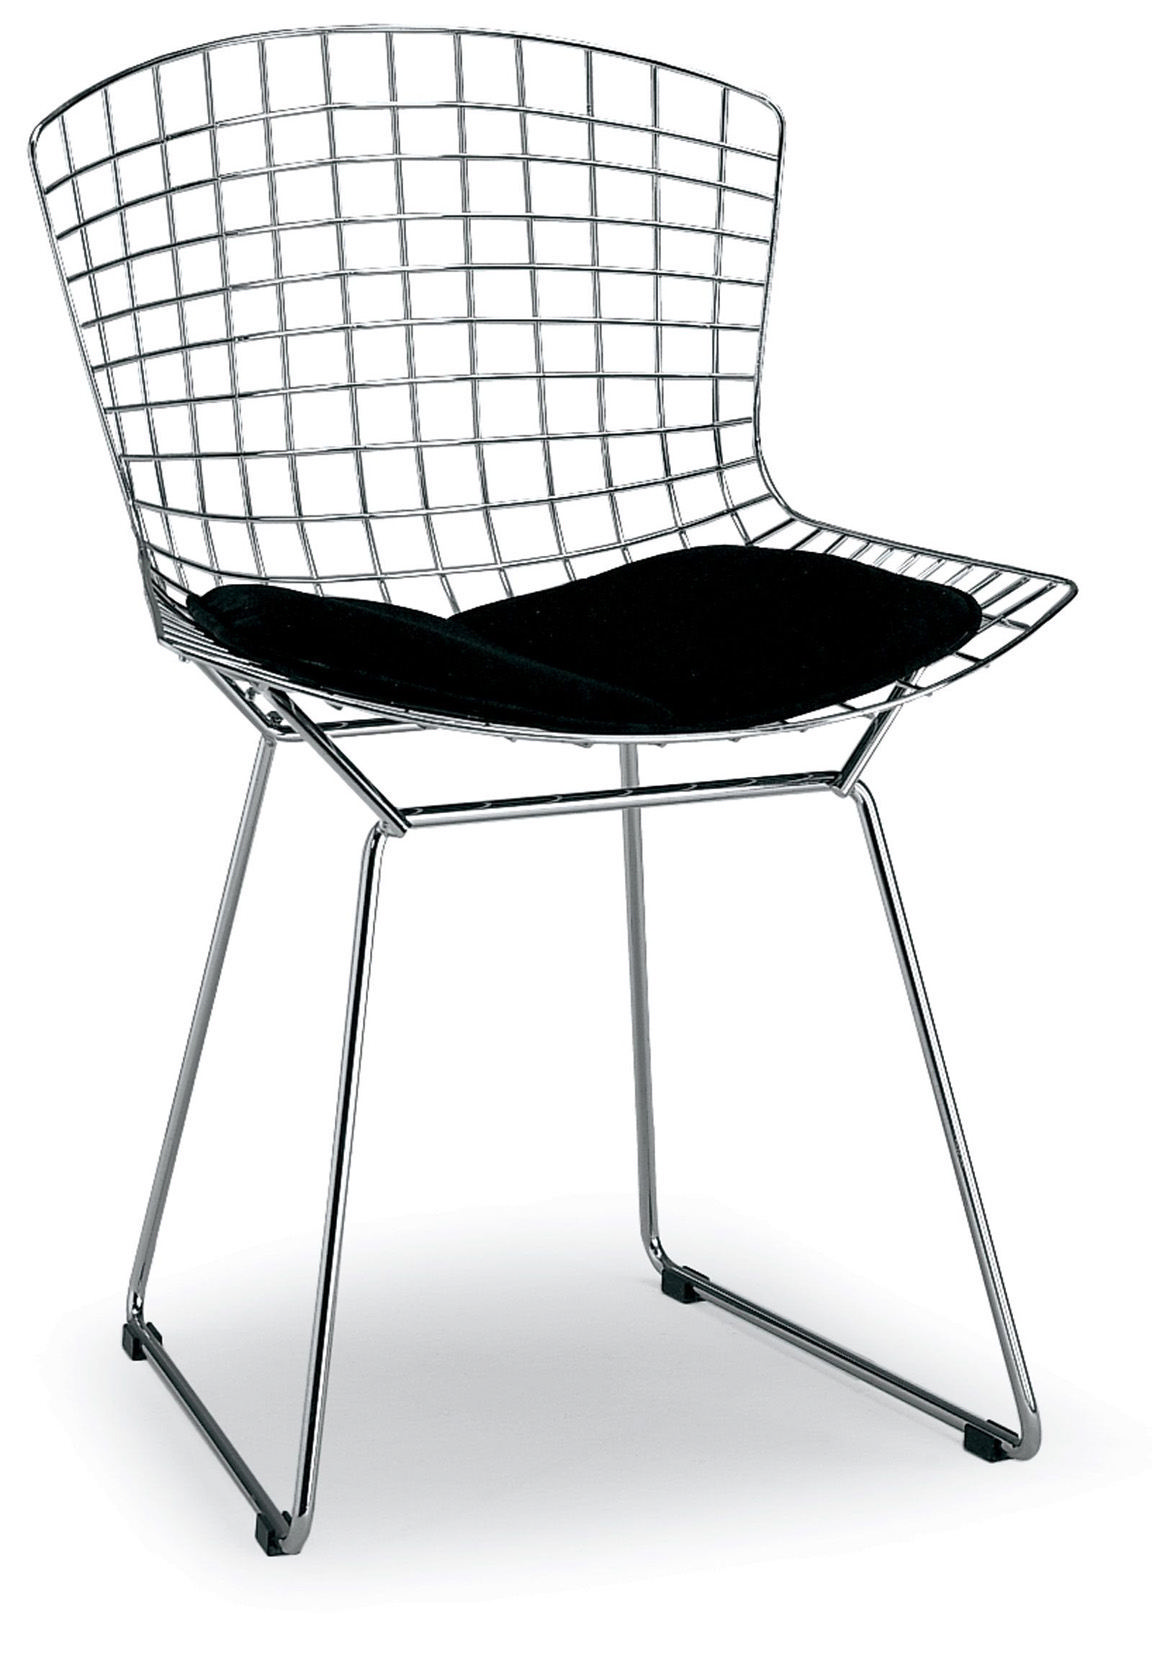 Gallery of High Resolution Images  sc 1 st  Malik Gallery & Malik Gallery Collection | Harry Bertoia Wire Chair